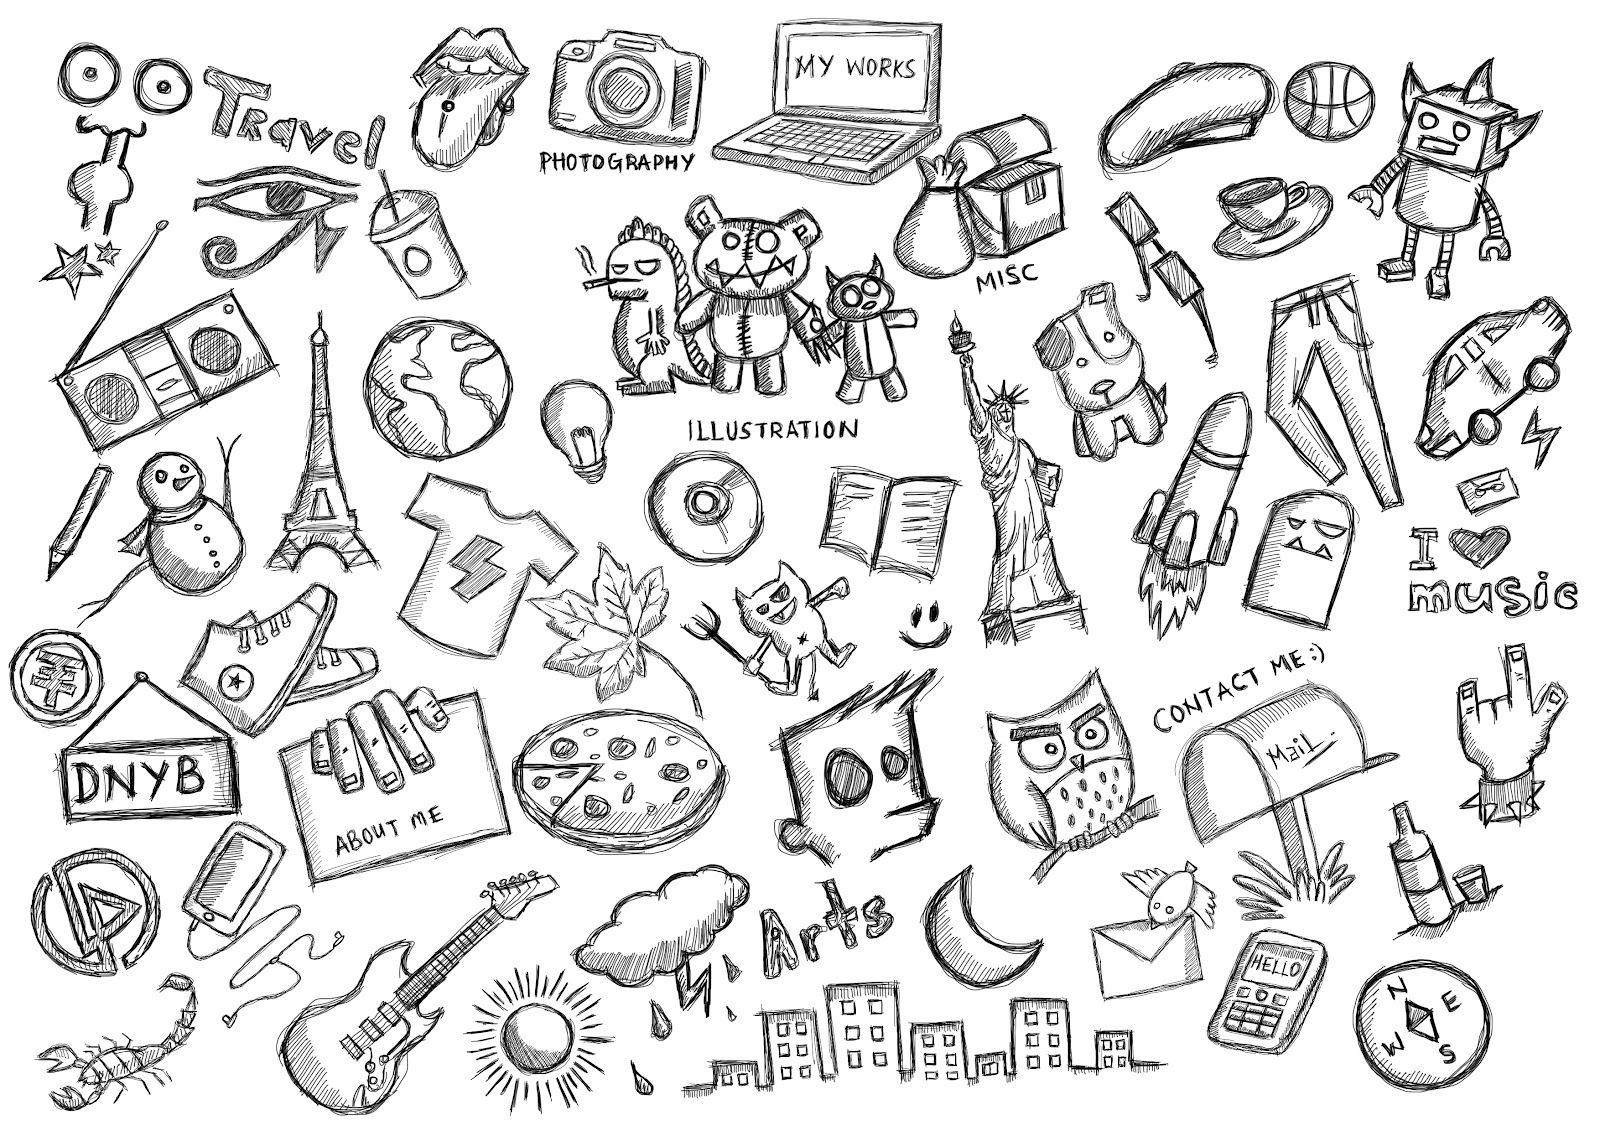 doodles simple doodle cute very yb web point quotes portfolio rider blank alex advertisement assignment interactive homepage without then colors